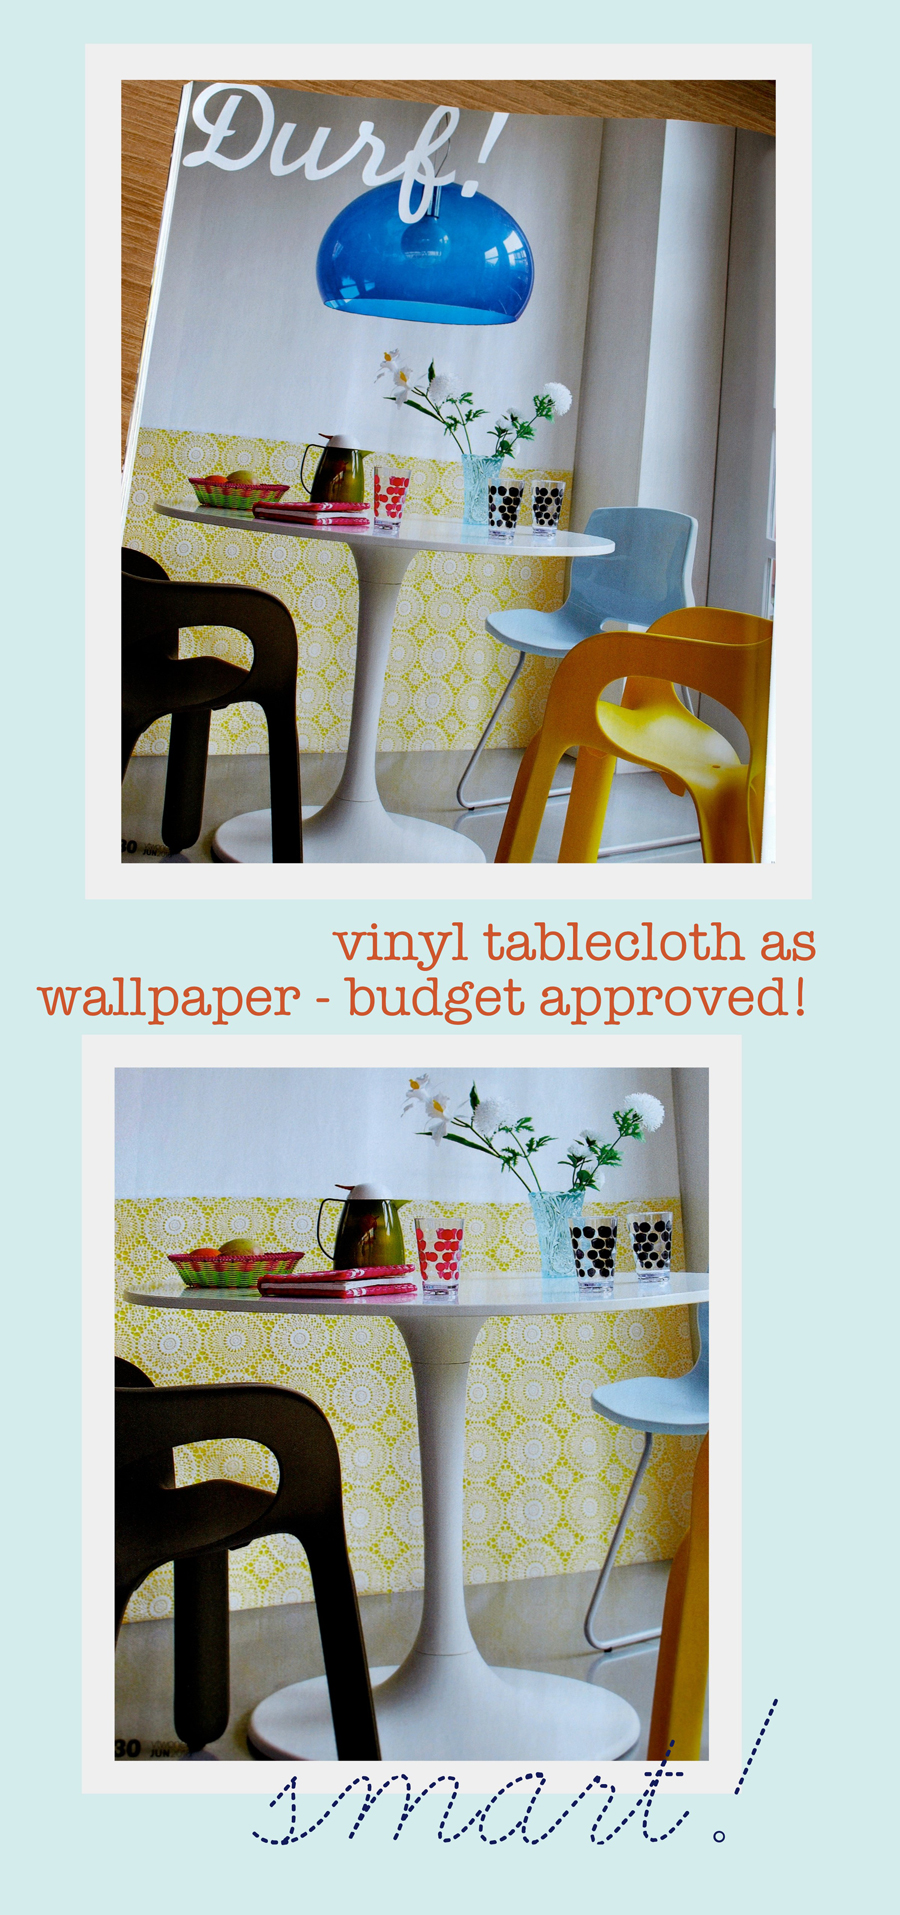 Vinyl Tablecloth As Wallpaper?